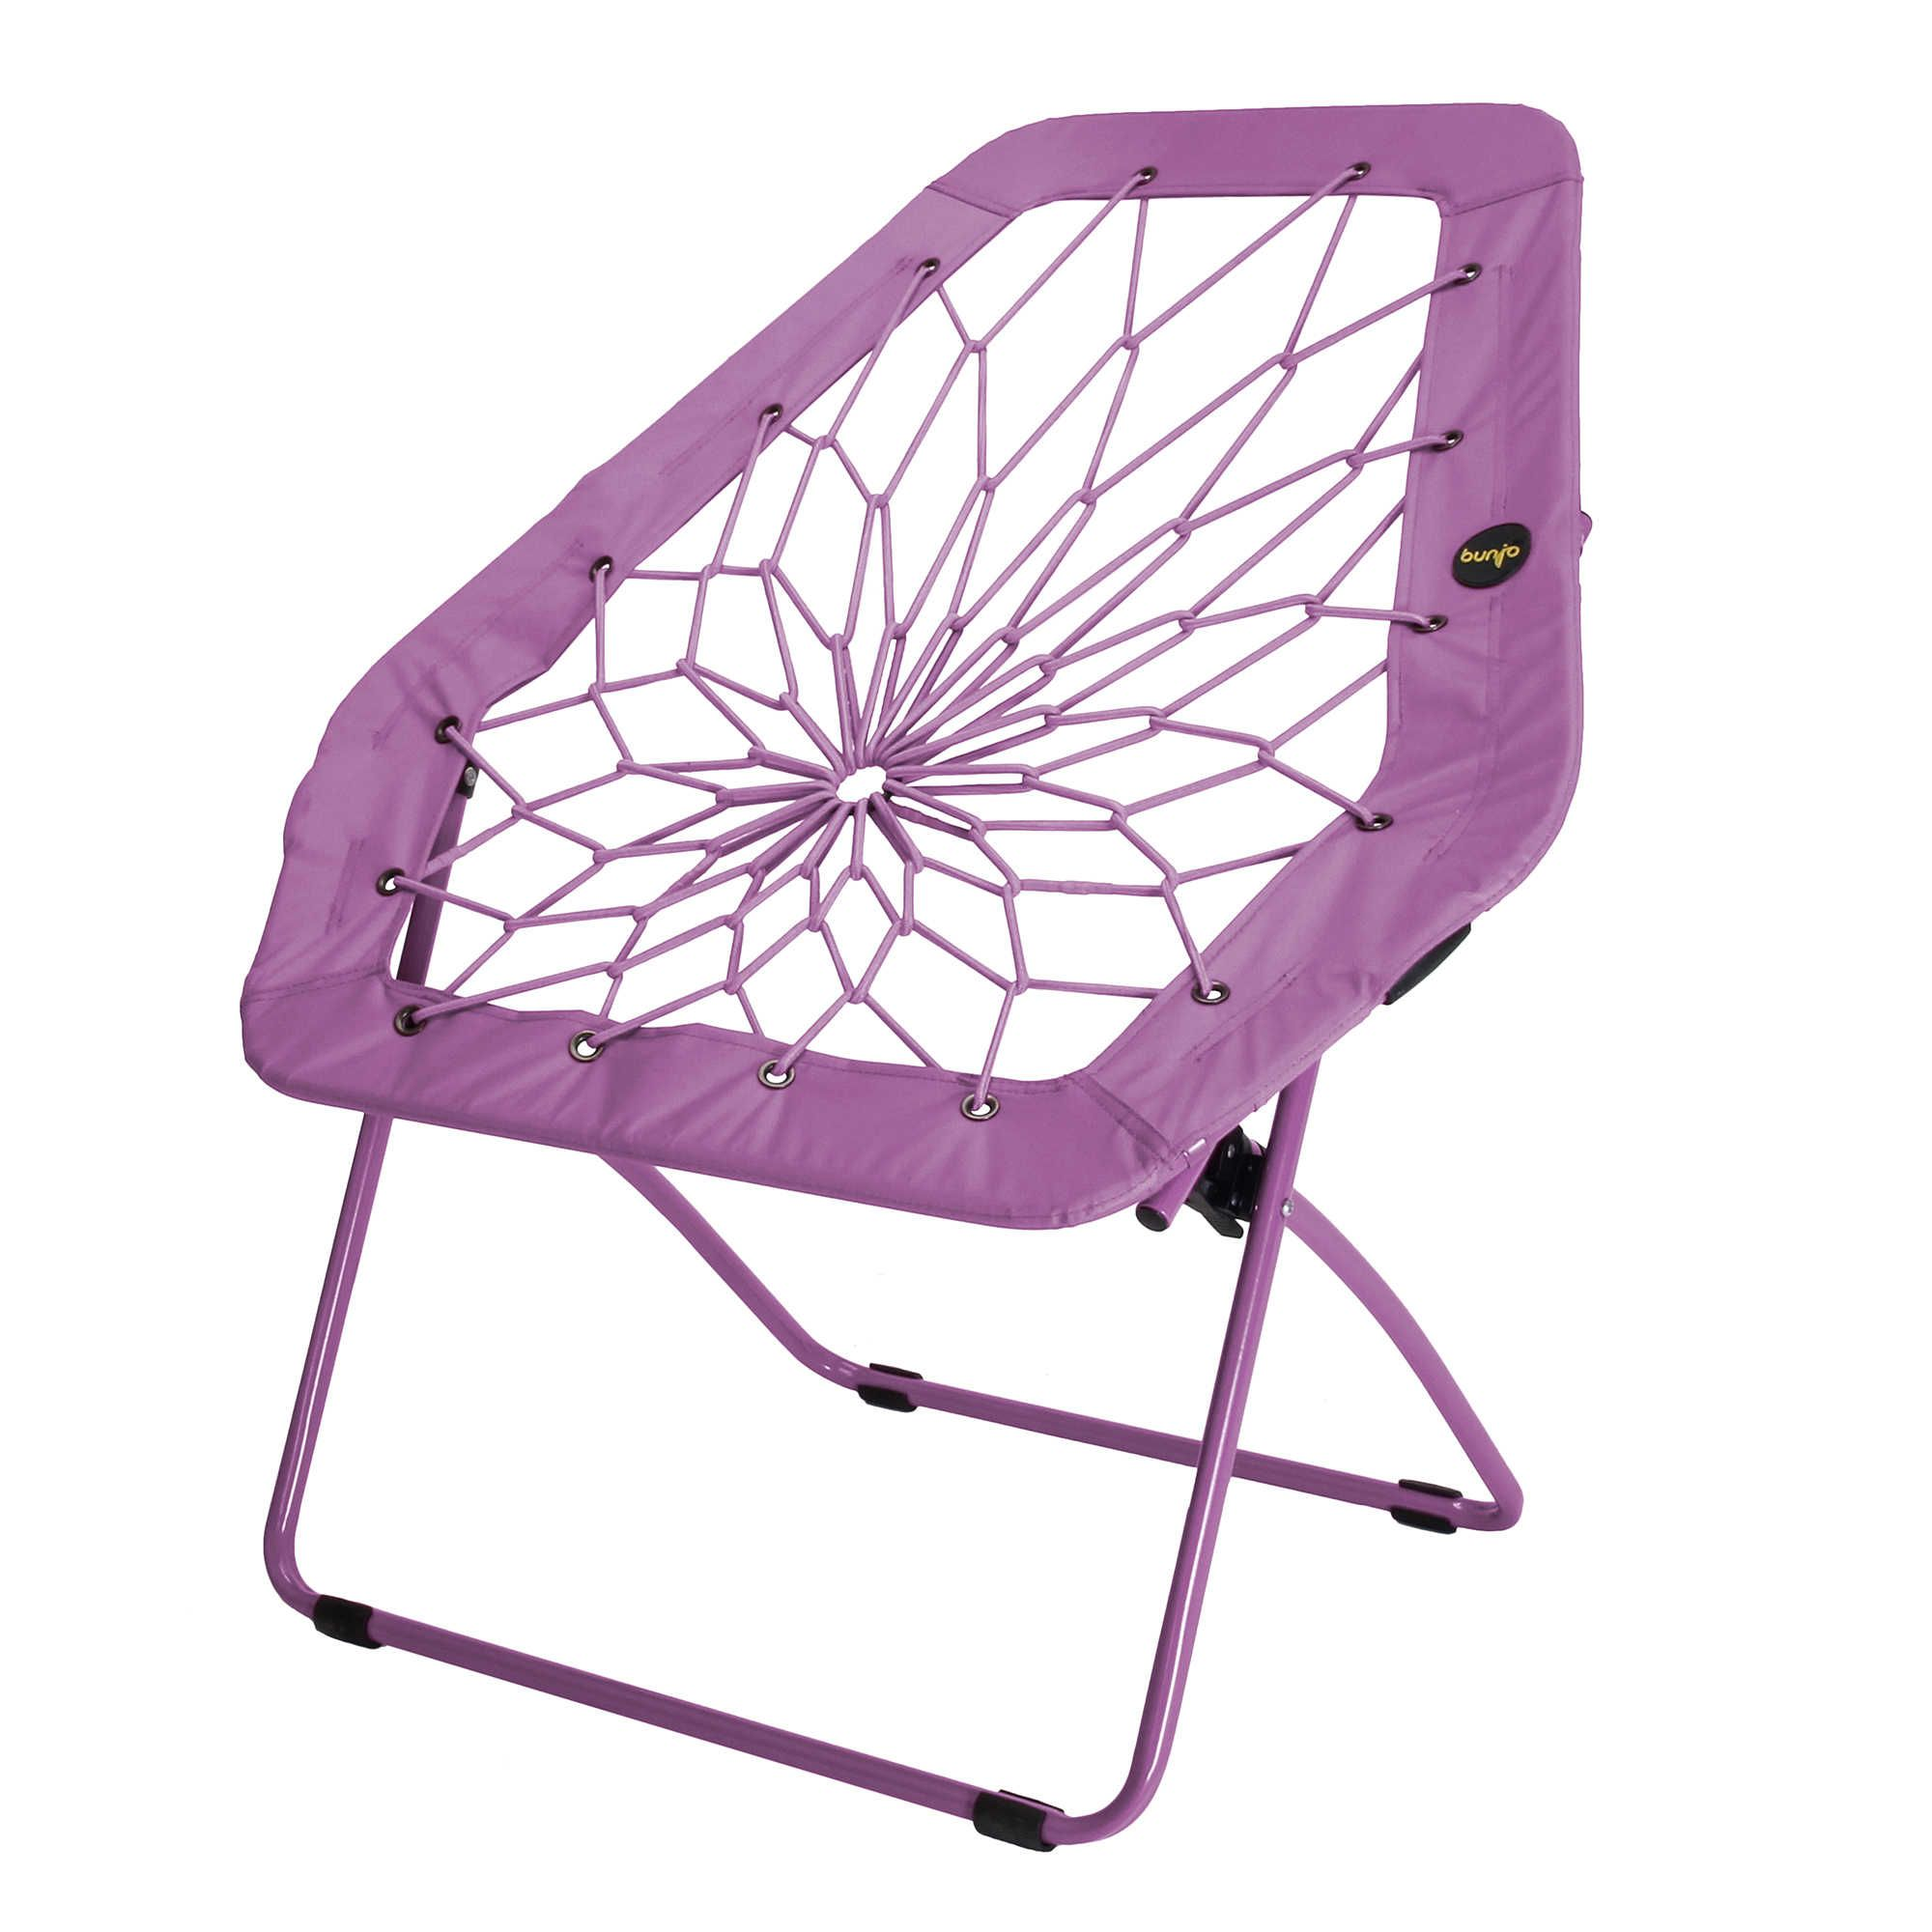 Bungi Chair Bunjo Oversized Bungee Chair College List 2 Chair